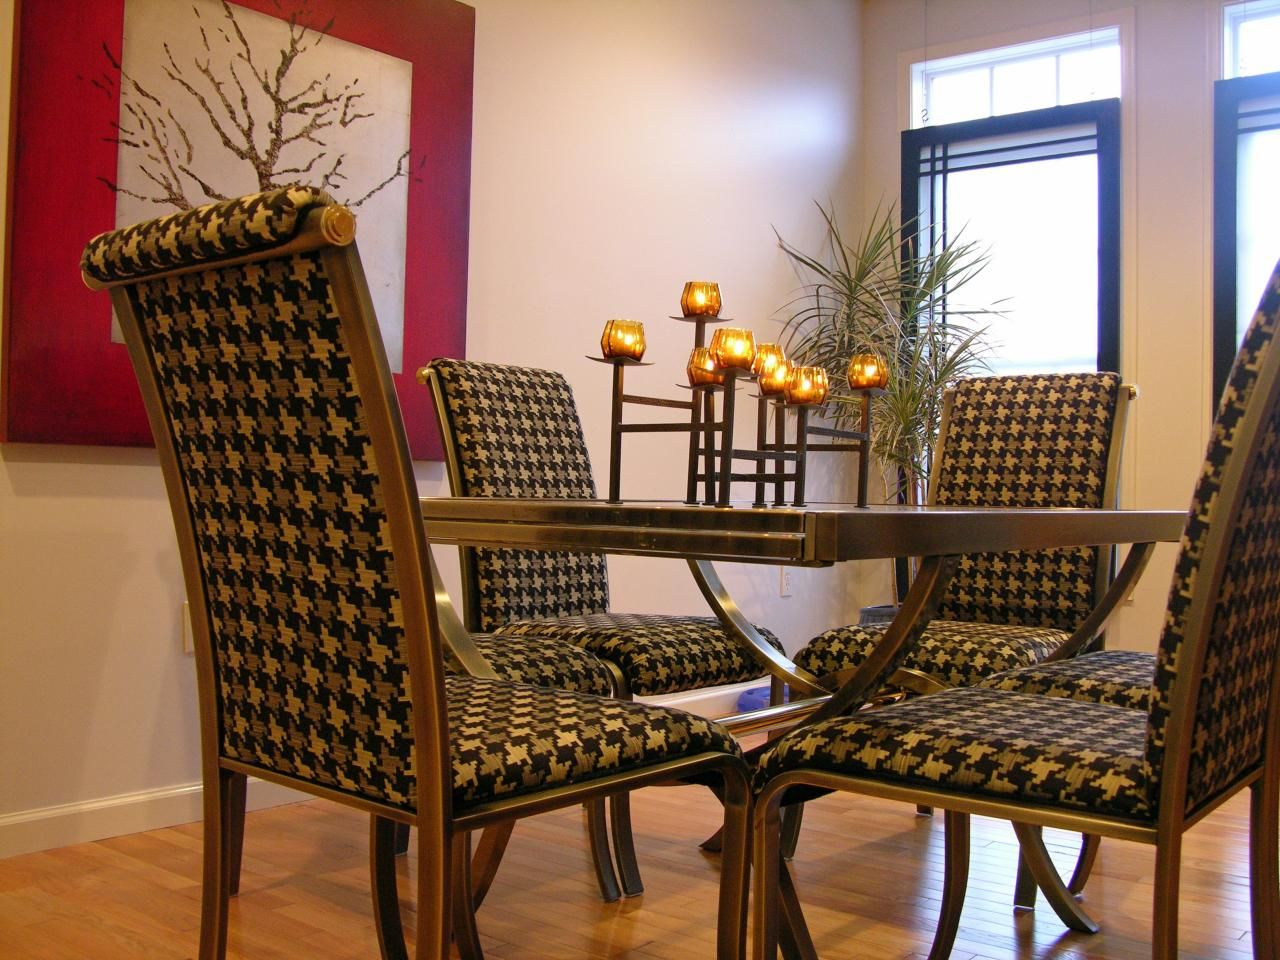 Four Dining Room Chairs In A Houndstooth Pattern Upholstery Are The Visual  Standout In This Transitional